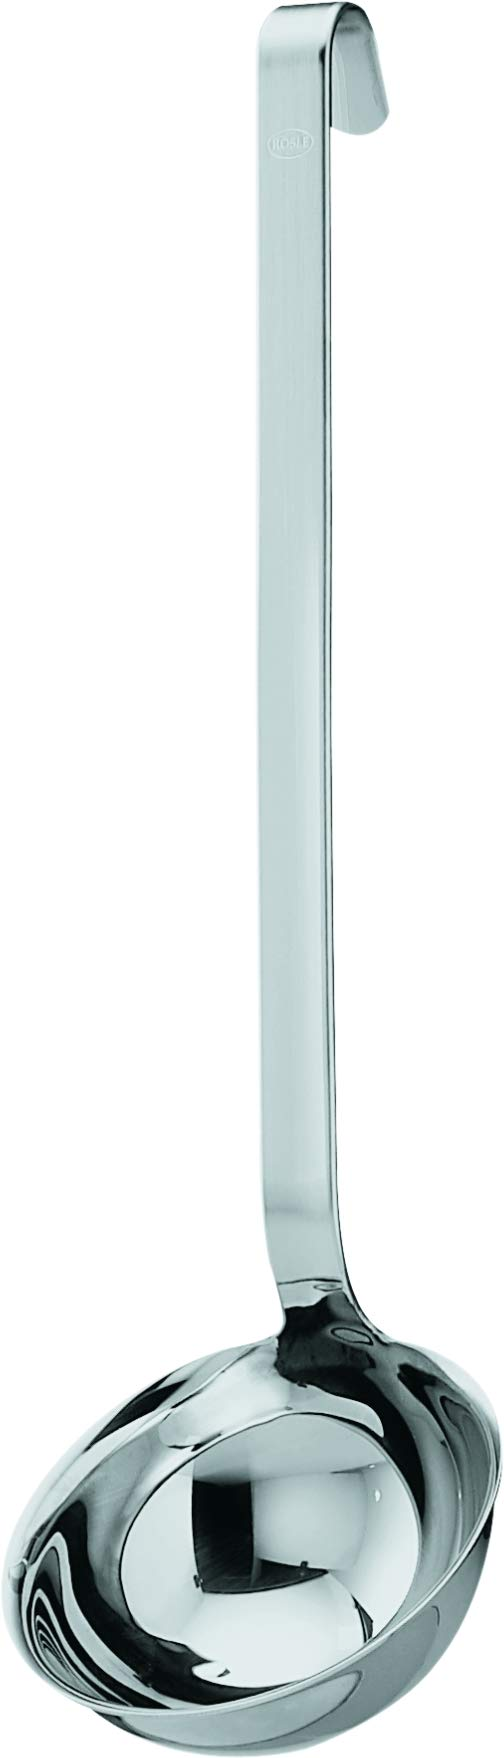 Rosle R246;sle Ladle with Pouring Rim 10009, 5.4 oz. by Rosle